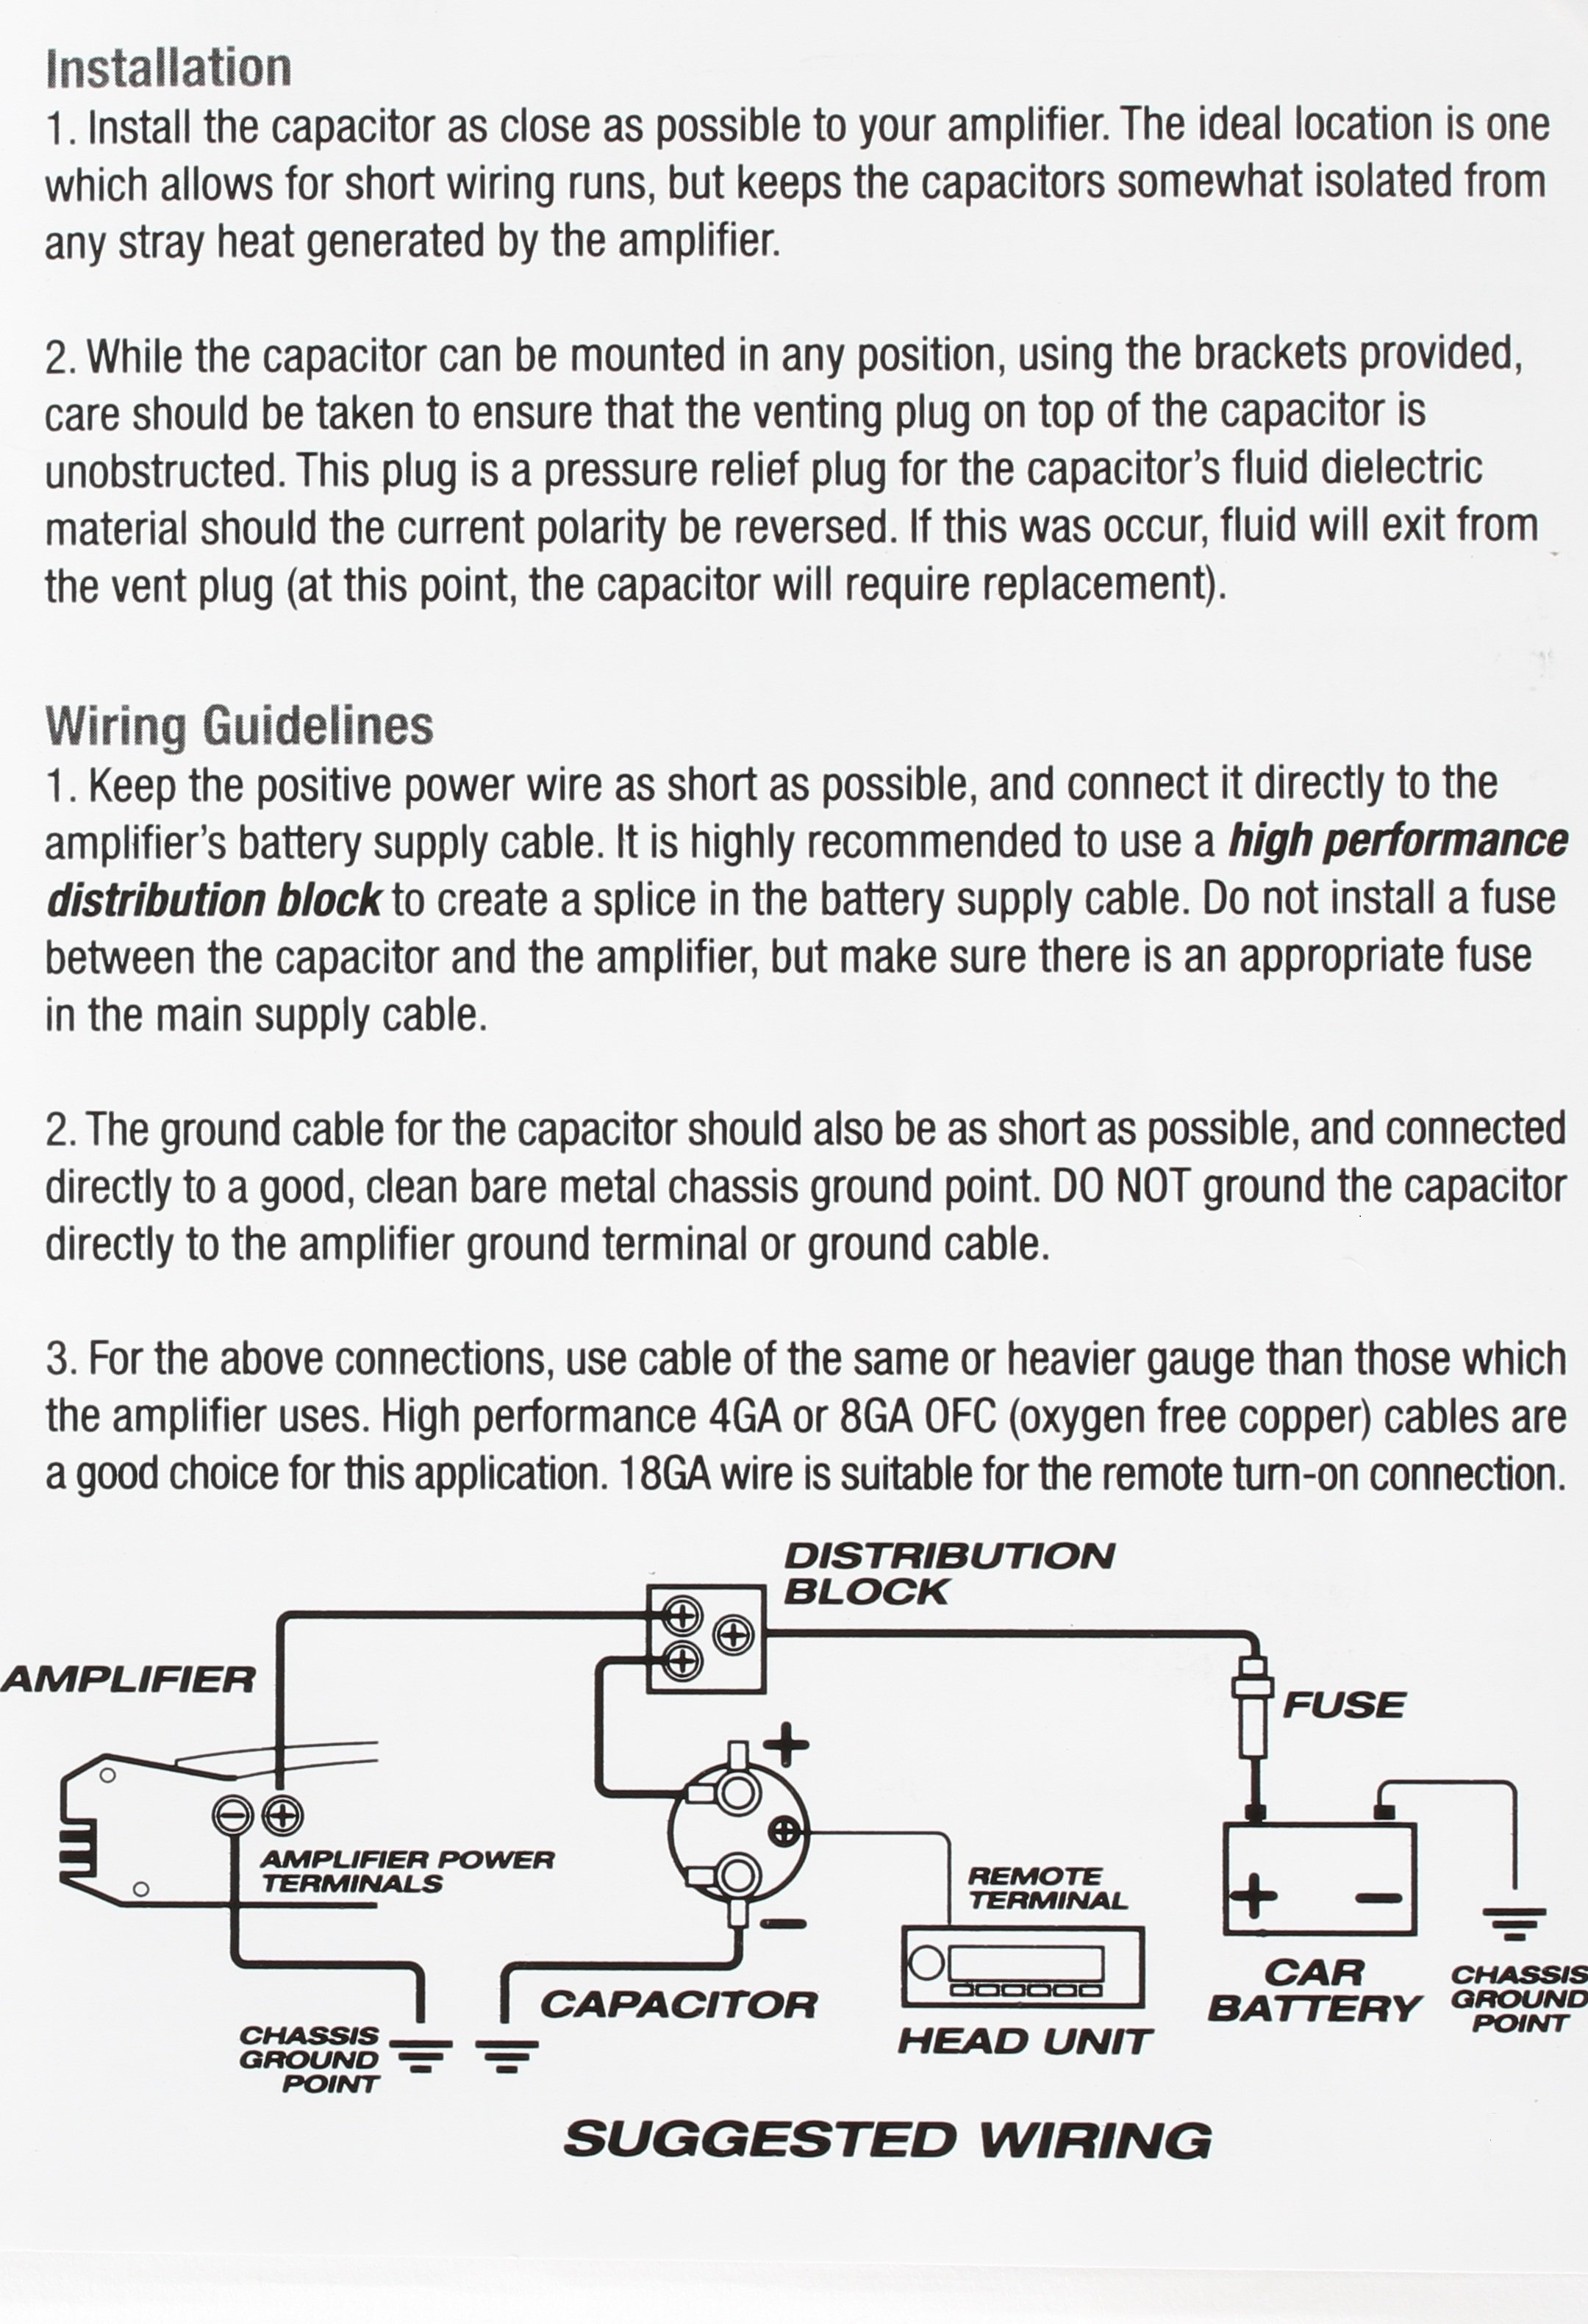 B001DXF99K_CapacitorManual_Installation Click Car Wiring Diagram on custom stereo diagrams, factory car stereo diagrams, car starting system, car electrical, battery diagrams, car schematics, 7.3 ford diesel diagrams, car vacuum diagrams, club car manual wire diagrams, club car manuals and diagrams, car door lock diagram, car parts diagrams, 3930 ford tractor parts diagrams, car battery, chevy truck diagrams, car motors diagrams, autozone repair diagrams, car exhaust, pinout diagrams, dodge ram vacuum diagrams,